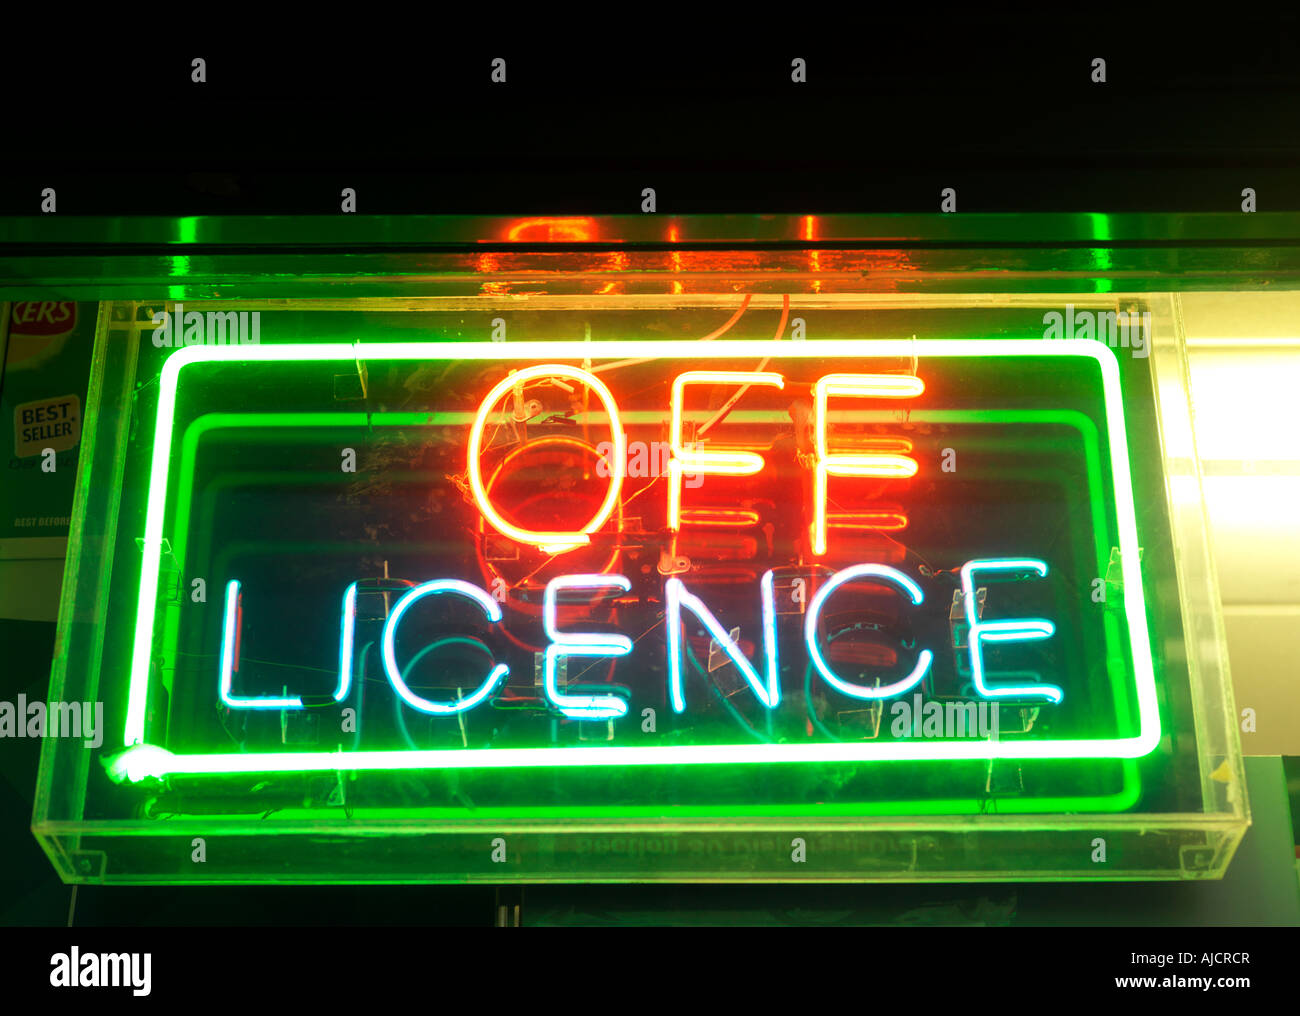 Off Licence Sign Nork Surrey England - Stock Image